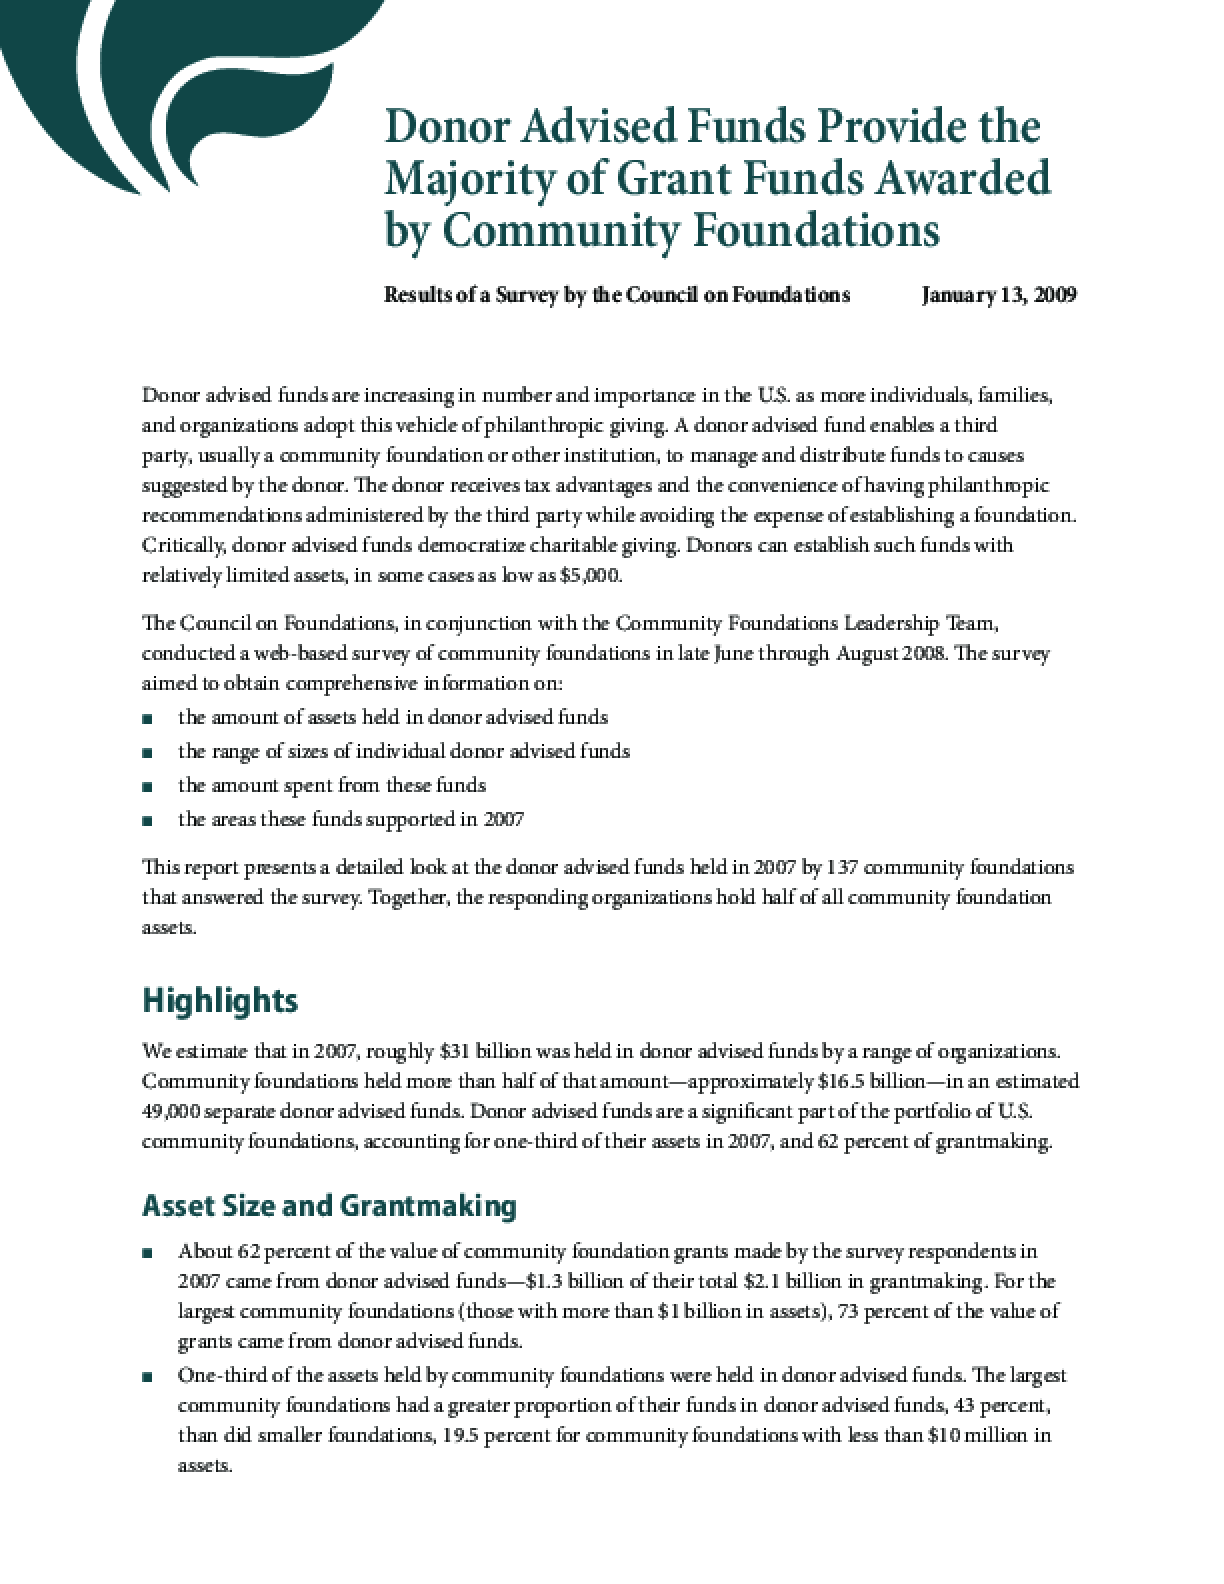 Donor-advised Funds Provide the Majority of Grant Funds Awarded By Community Foundations